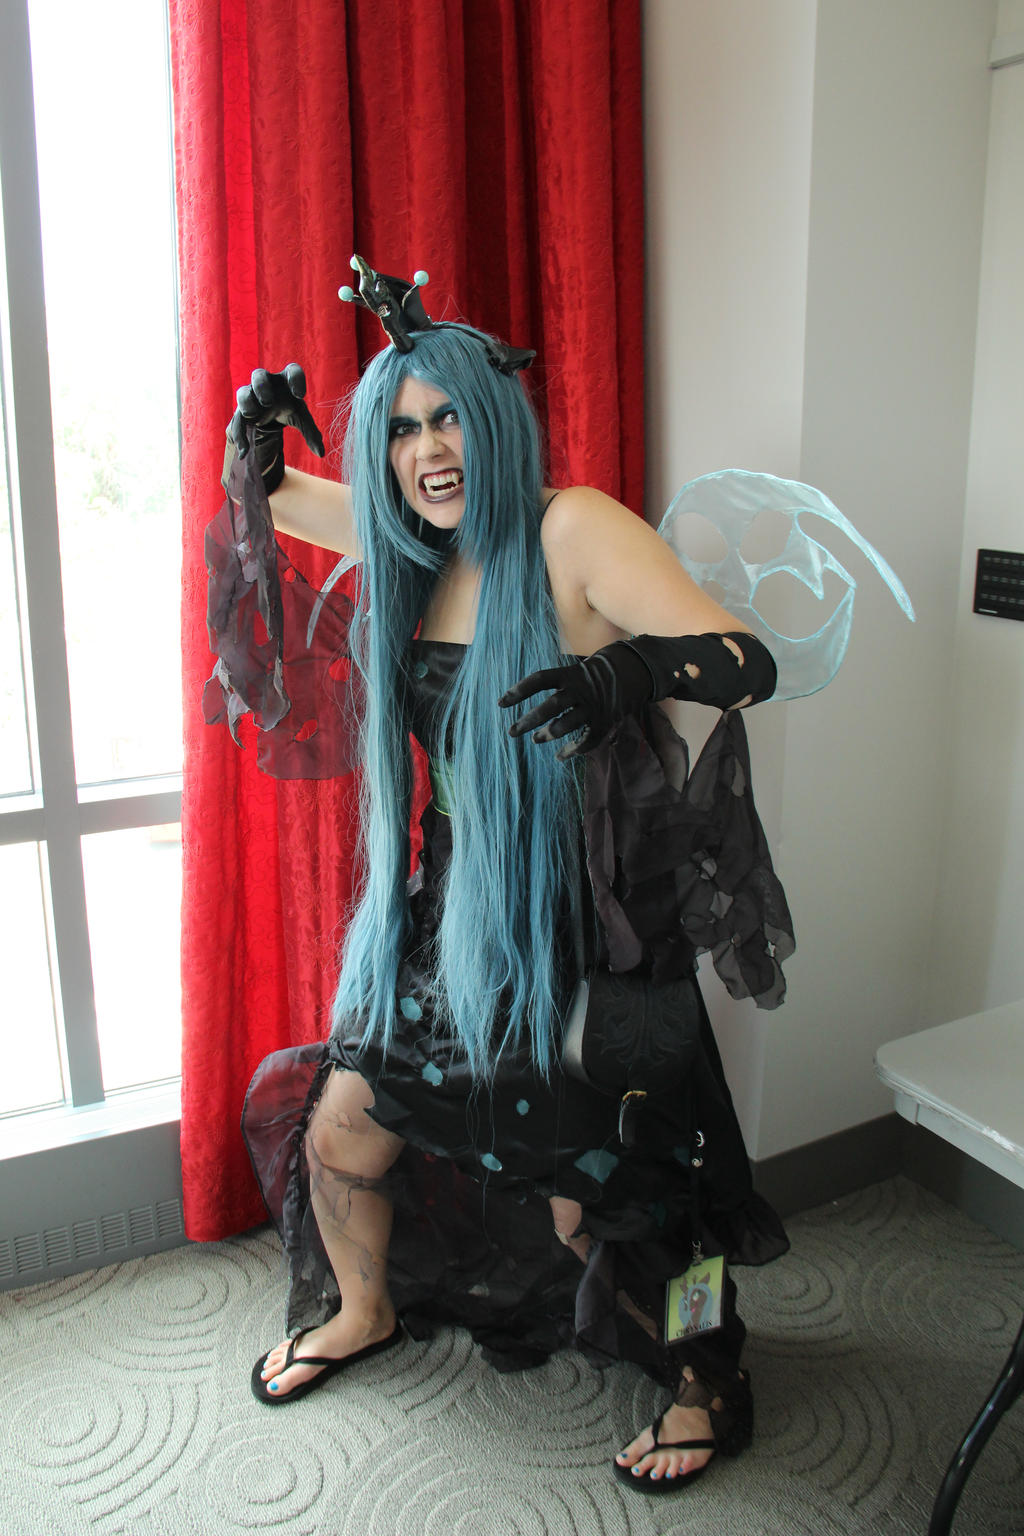 Queen Chrysalis at Trotcon by vervv